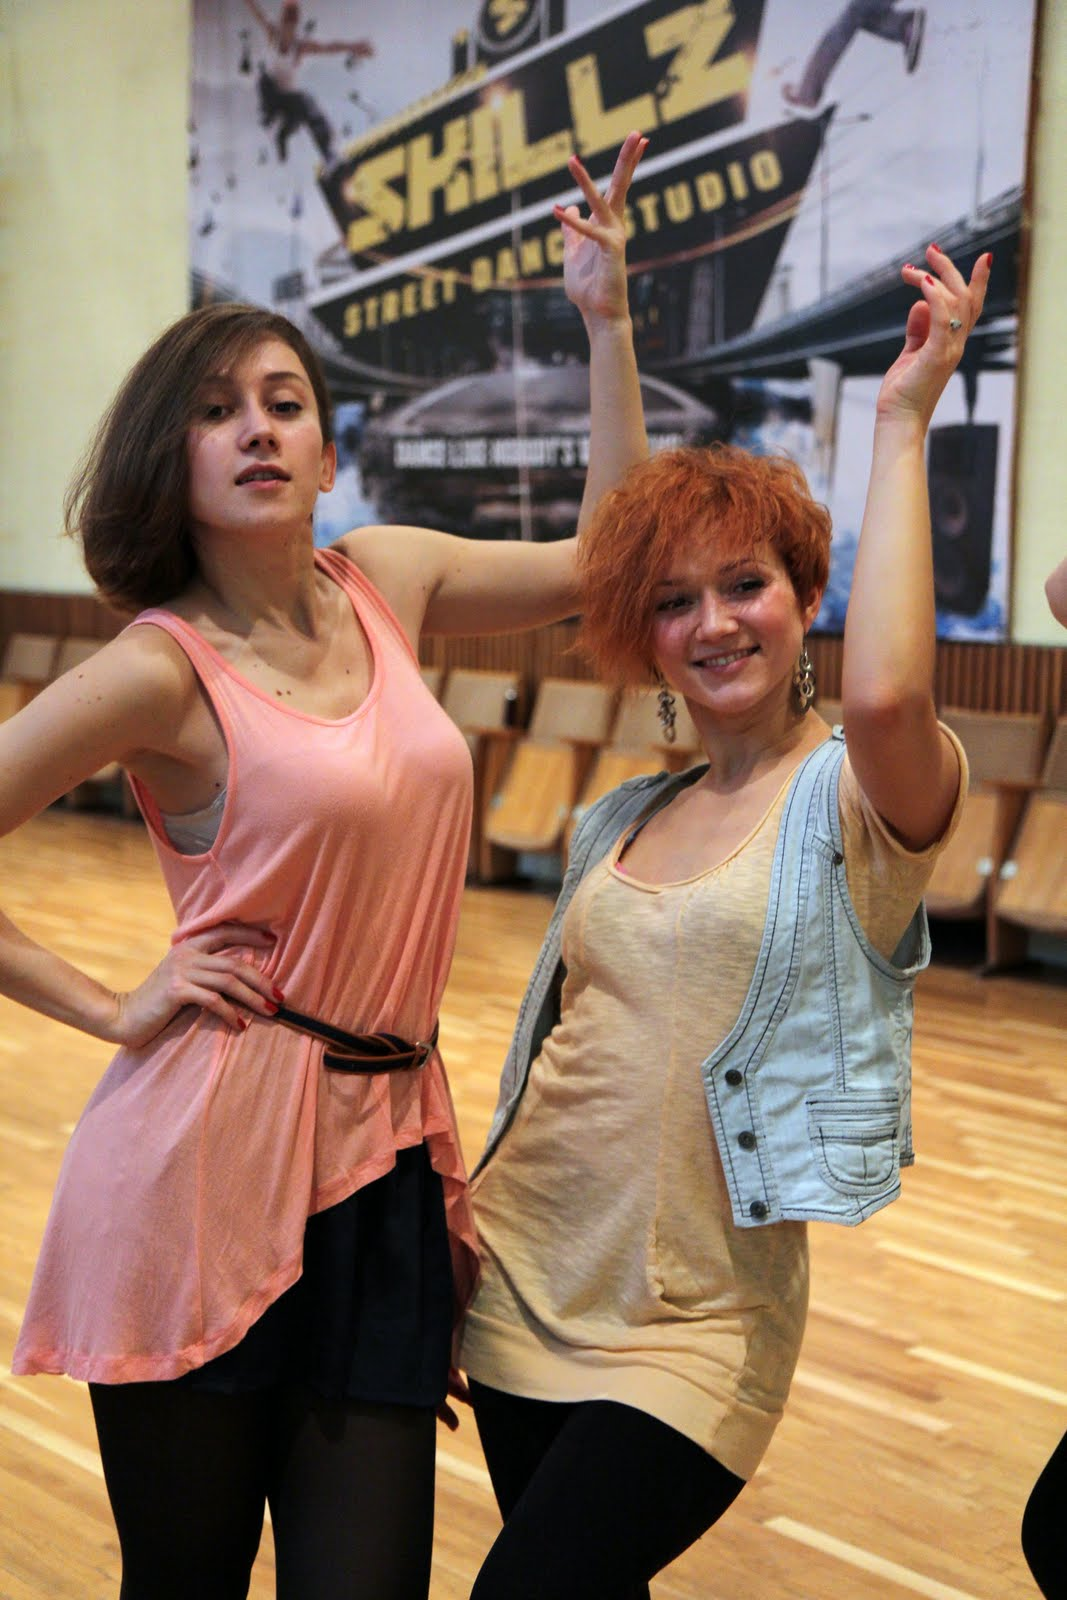 Waacking workshop with Nastya (LV) - IMG_2089.JPG